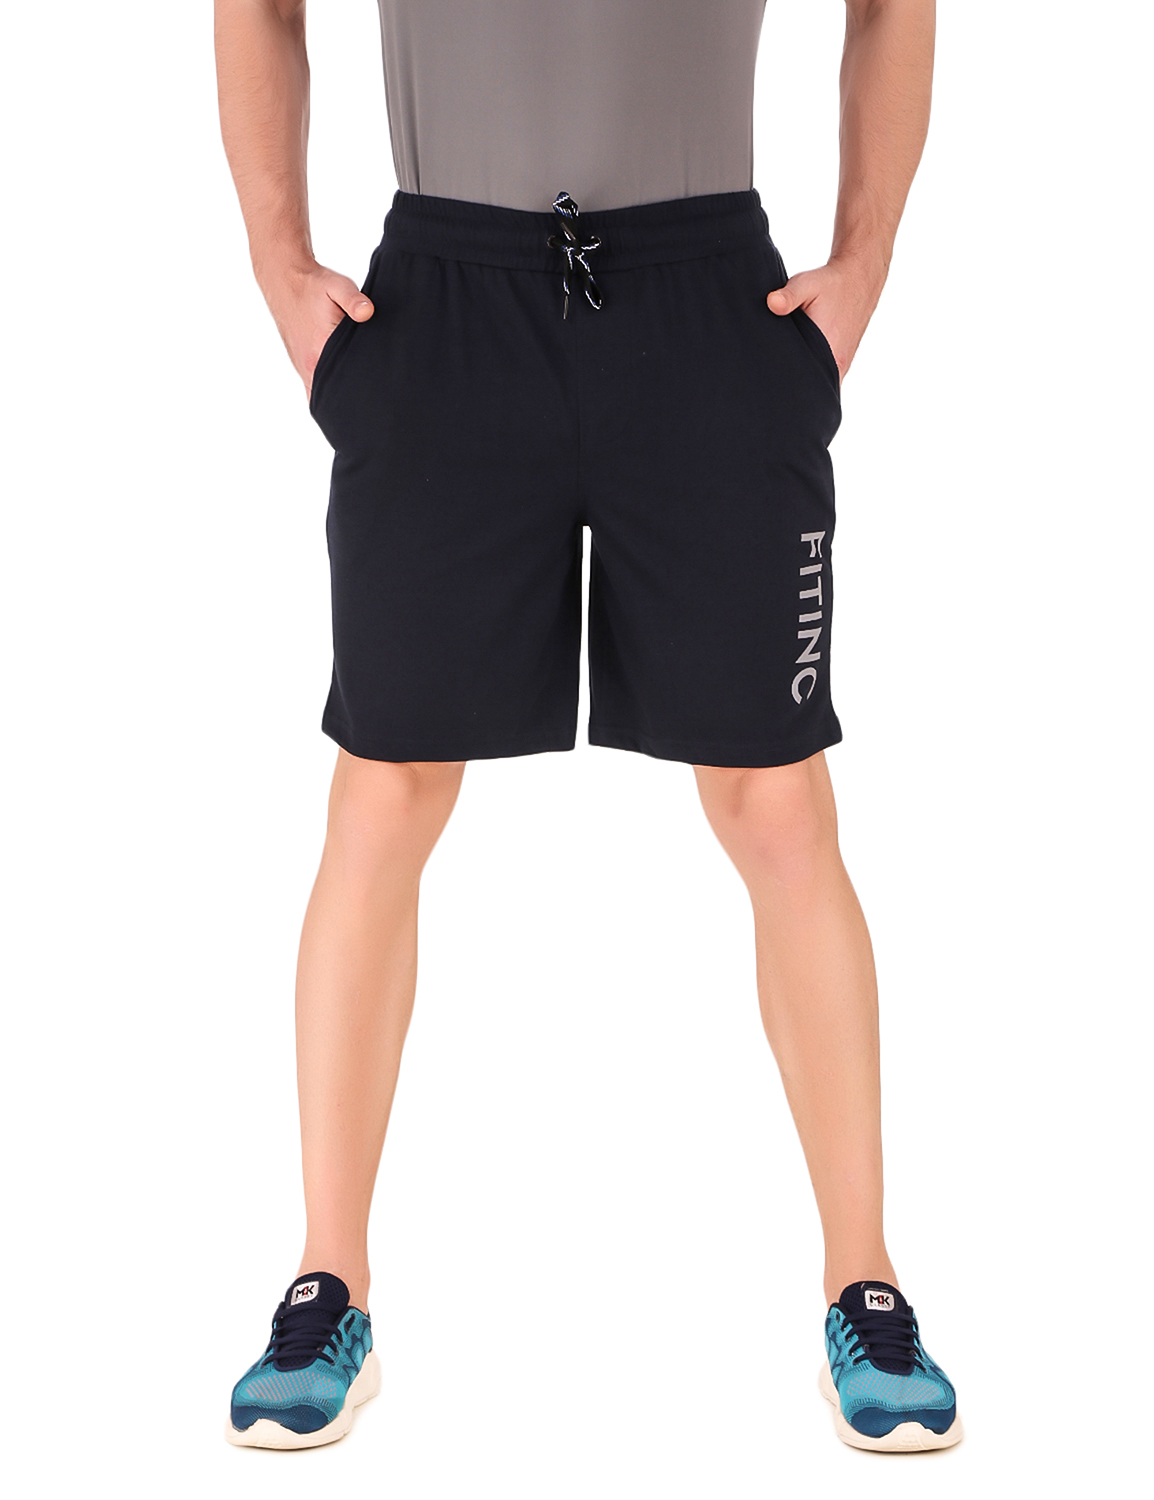 Fitinc | Fitinc Navy Blue Cotton Shorts with Side Pockets and Reflector Logo